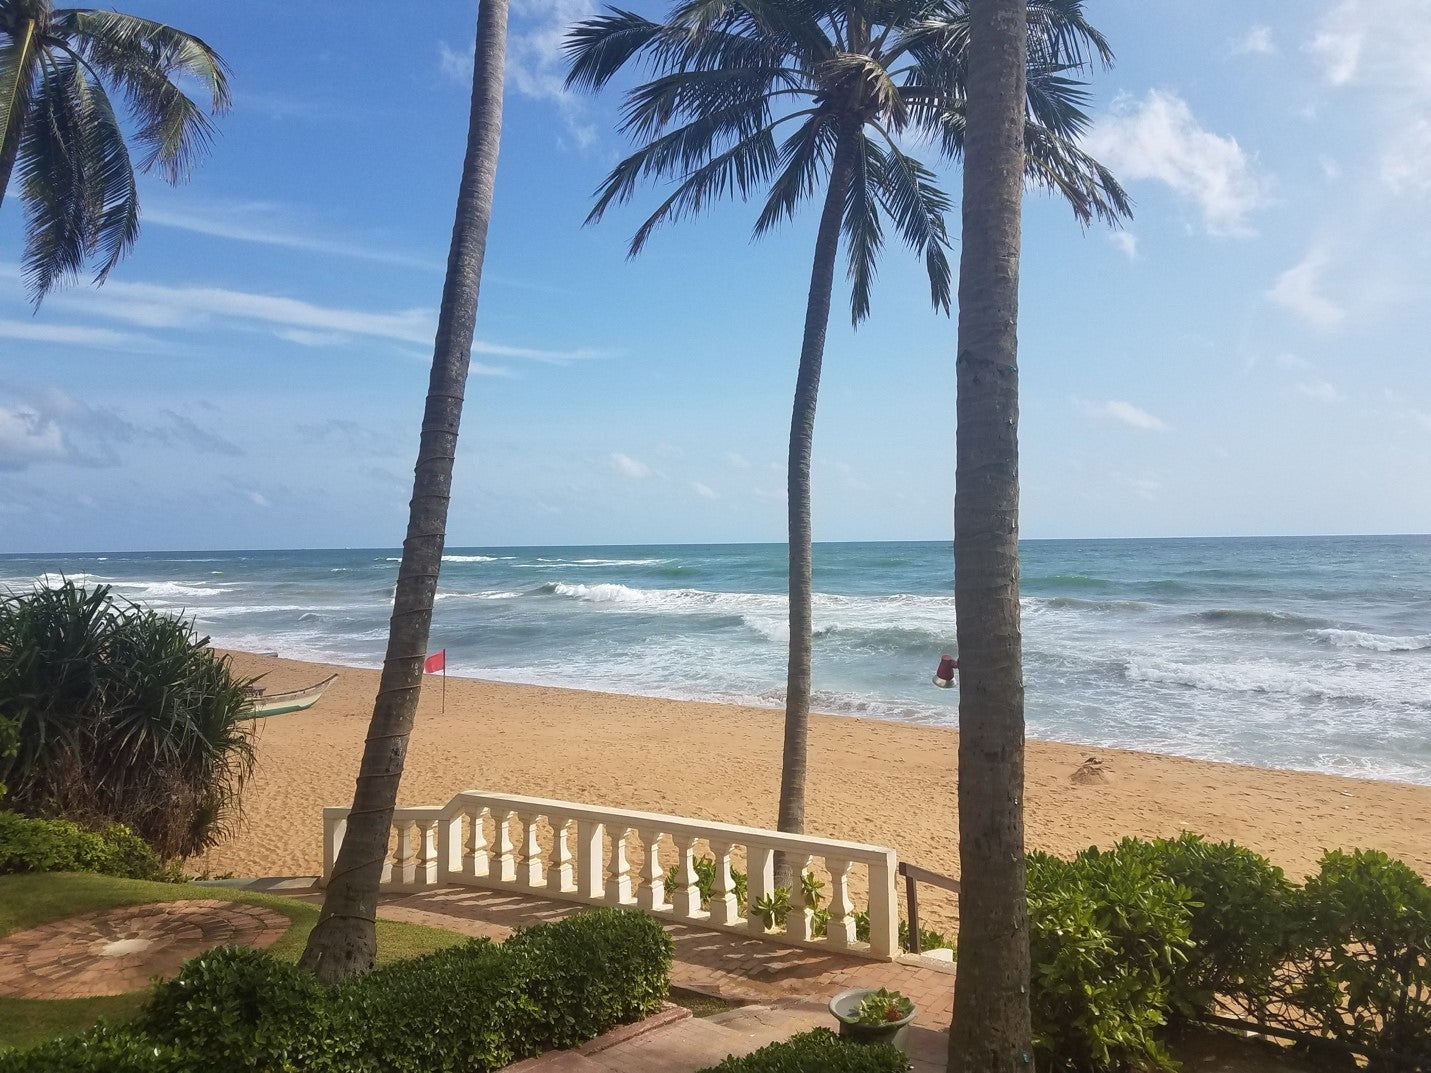 Reader Success Story! A Vacation to Sri Lanka Using Chase Points!